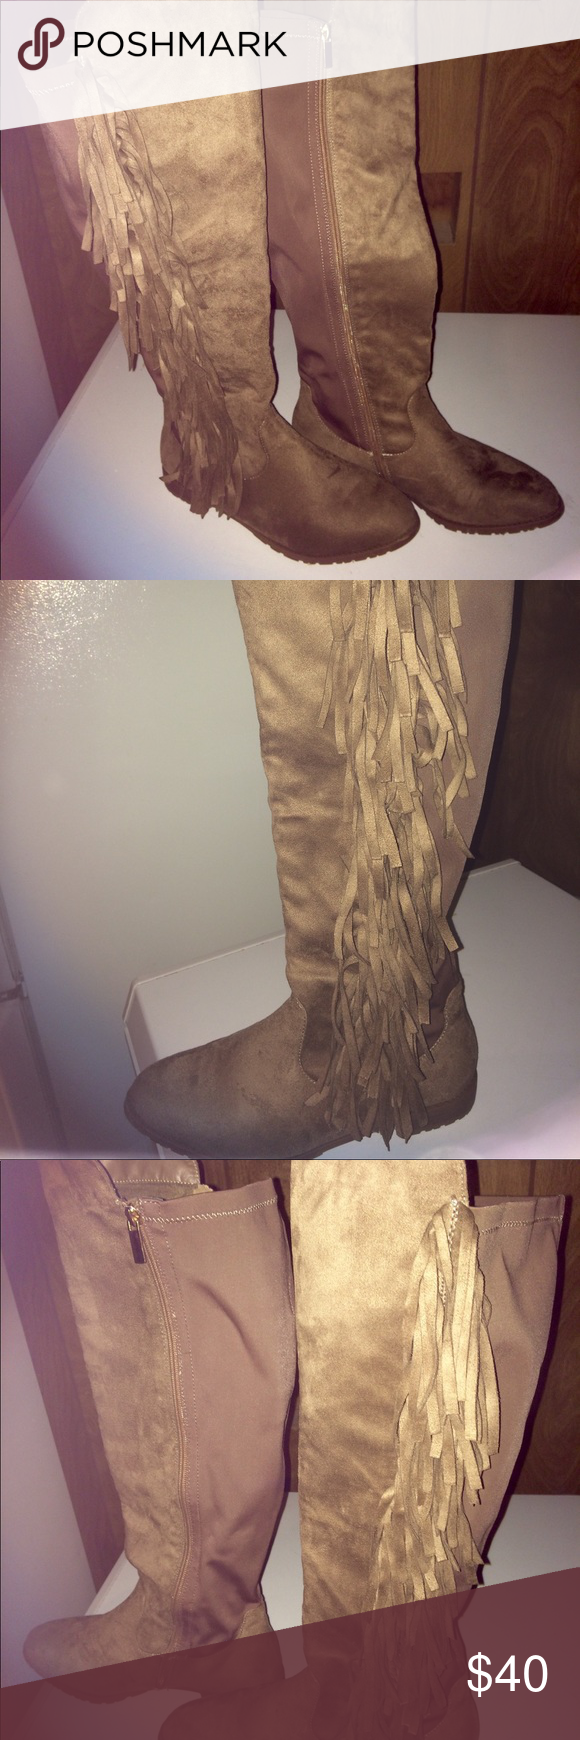 53a741c484f Lane Bryant Size 9W fringe boot Almost new lane bryant fringe boot with  stretch panel for